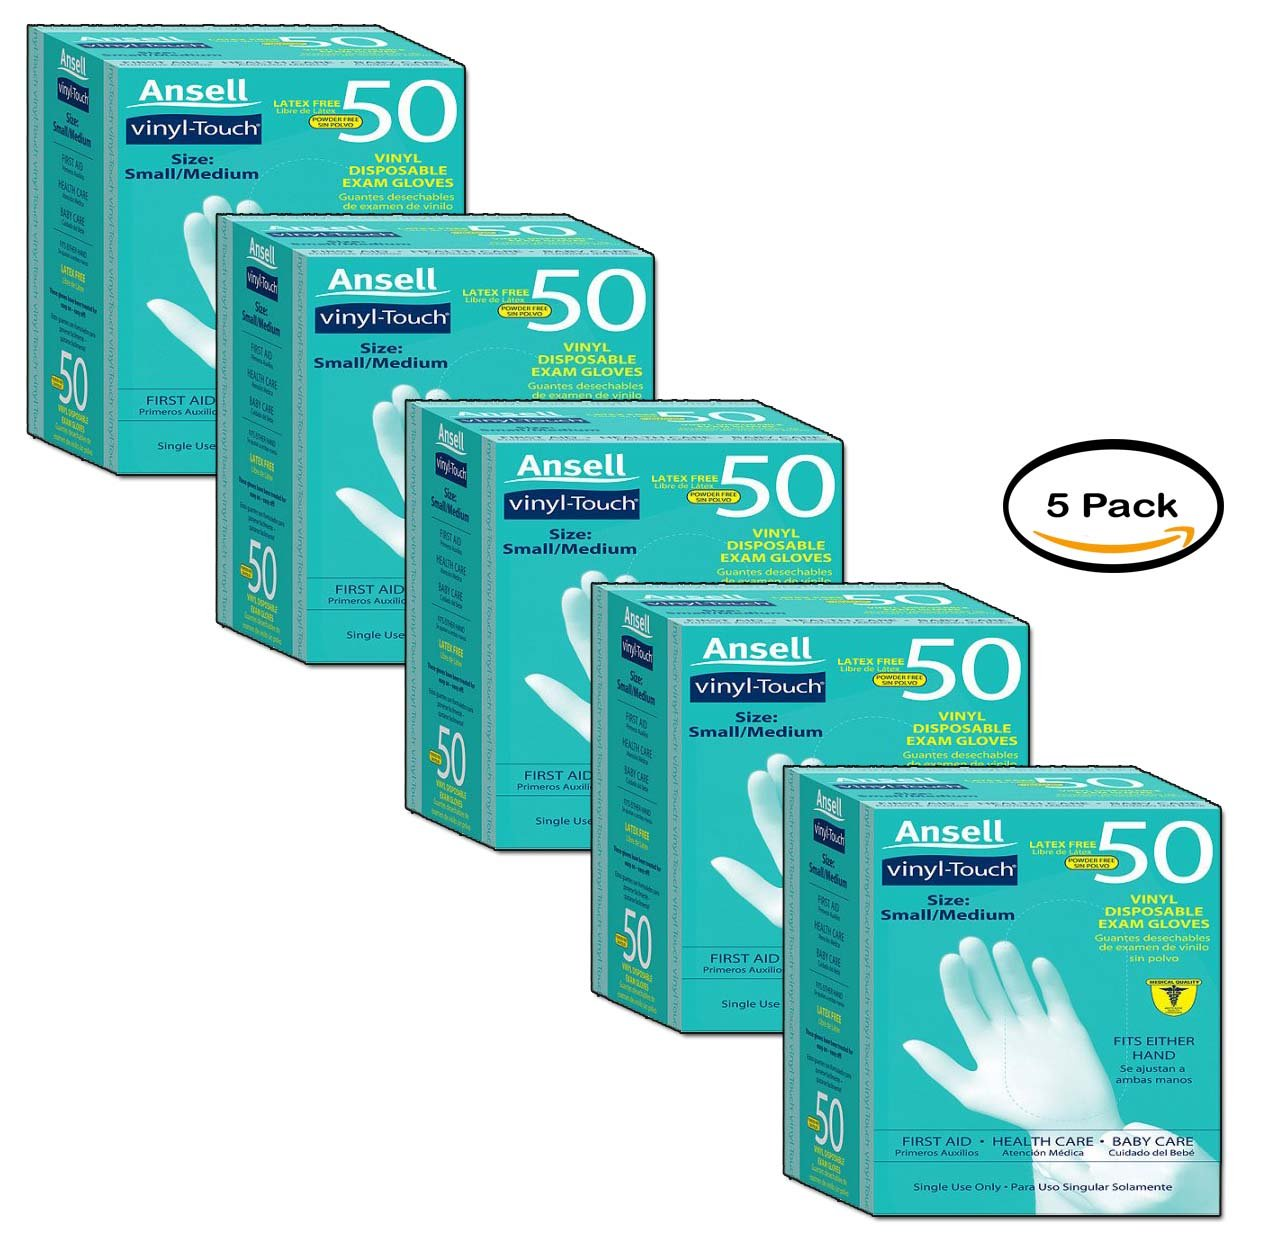 PACK OF 5 - Ansell Vinyl Touch Gloves, S/M, 50ct by Ansell